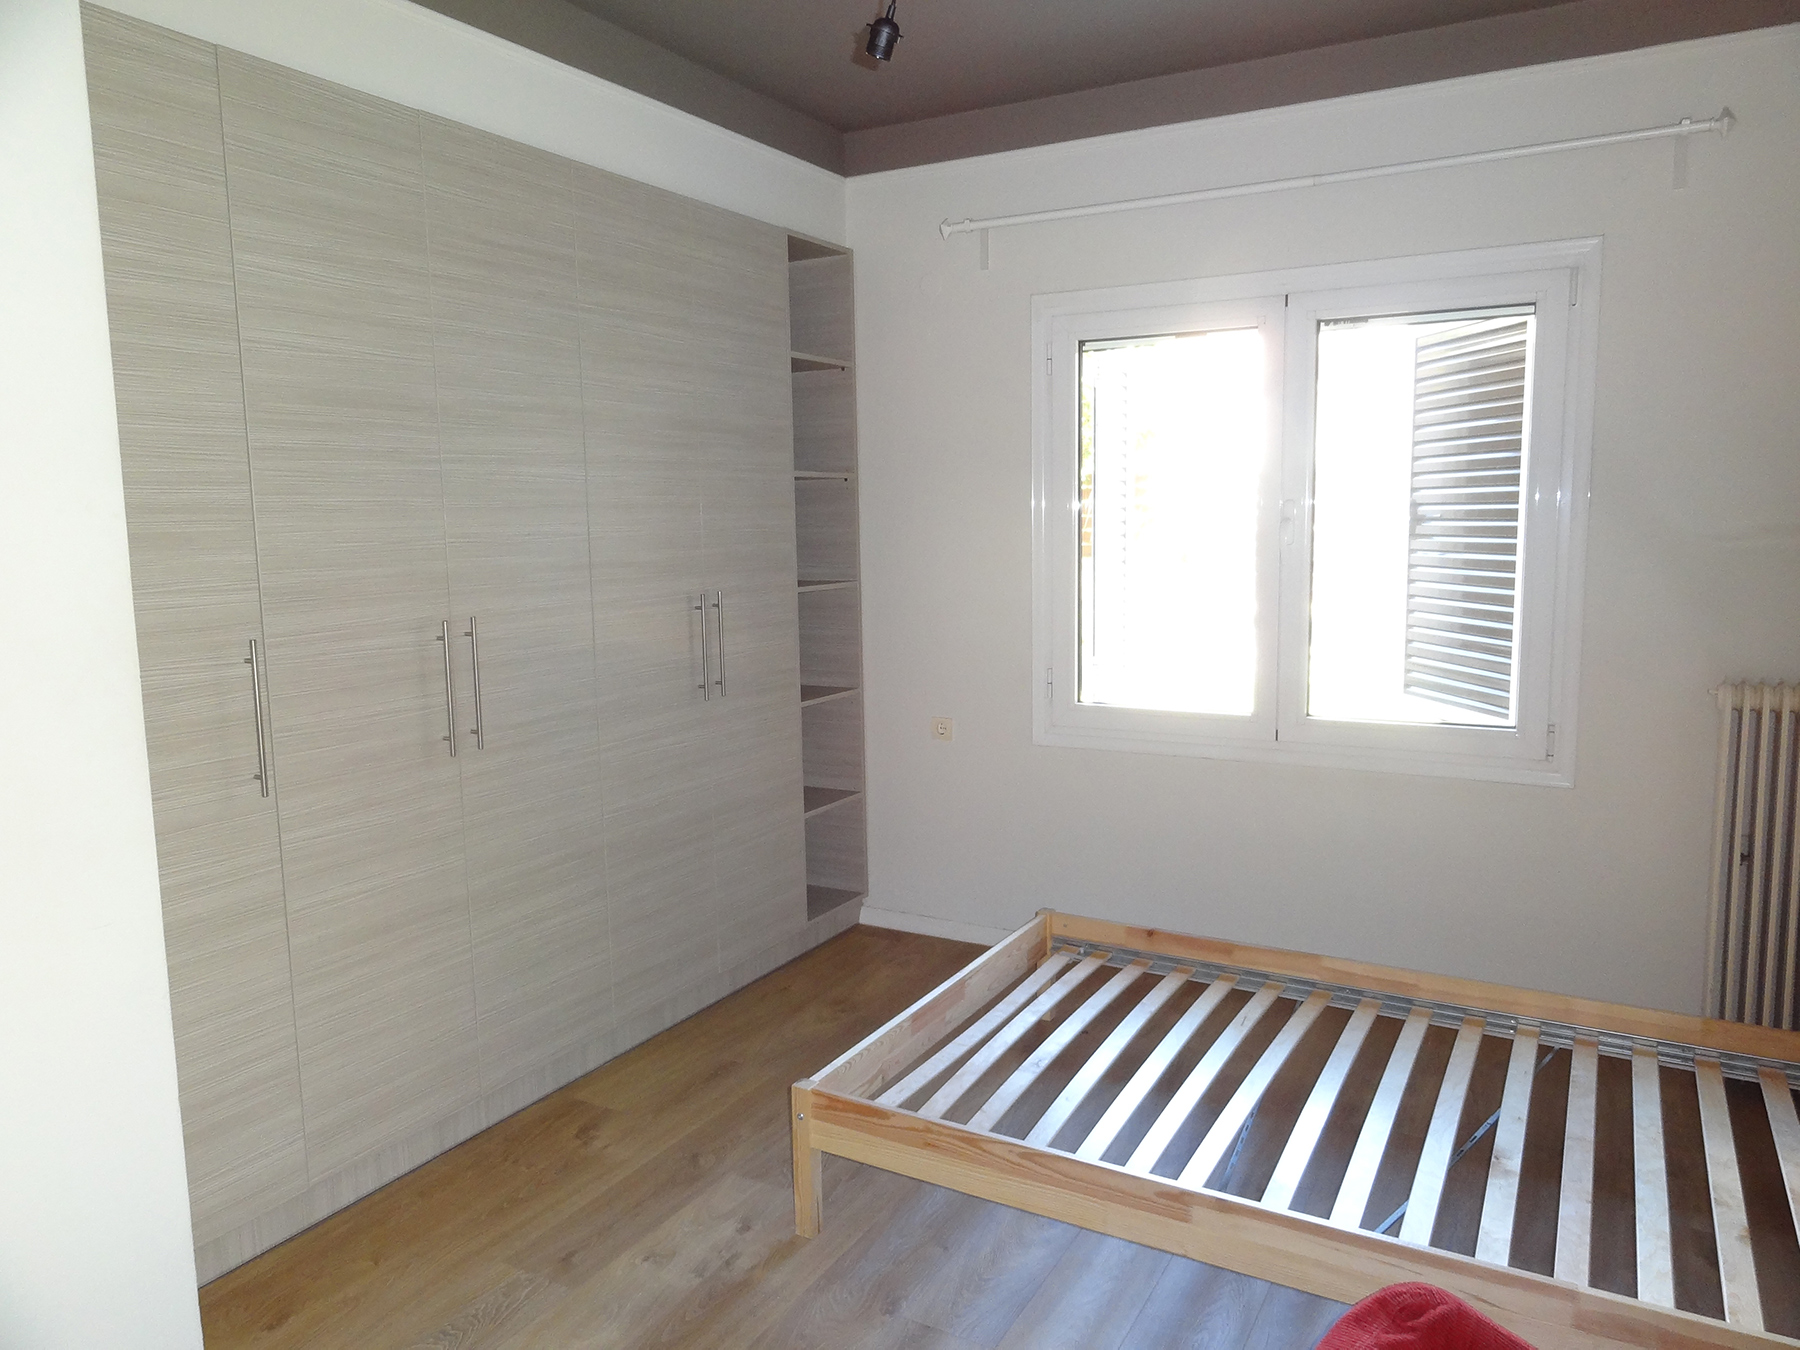 For rent renovated and partially furnished 1 bedroom apartment of 41 sq.m. ground floor near the Zosimaia school in Ioannina